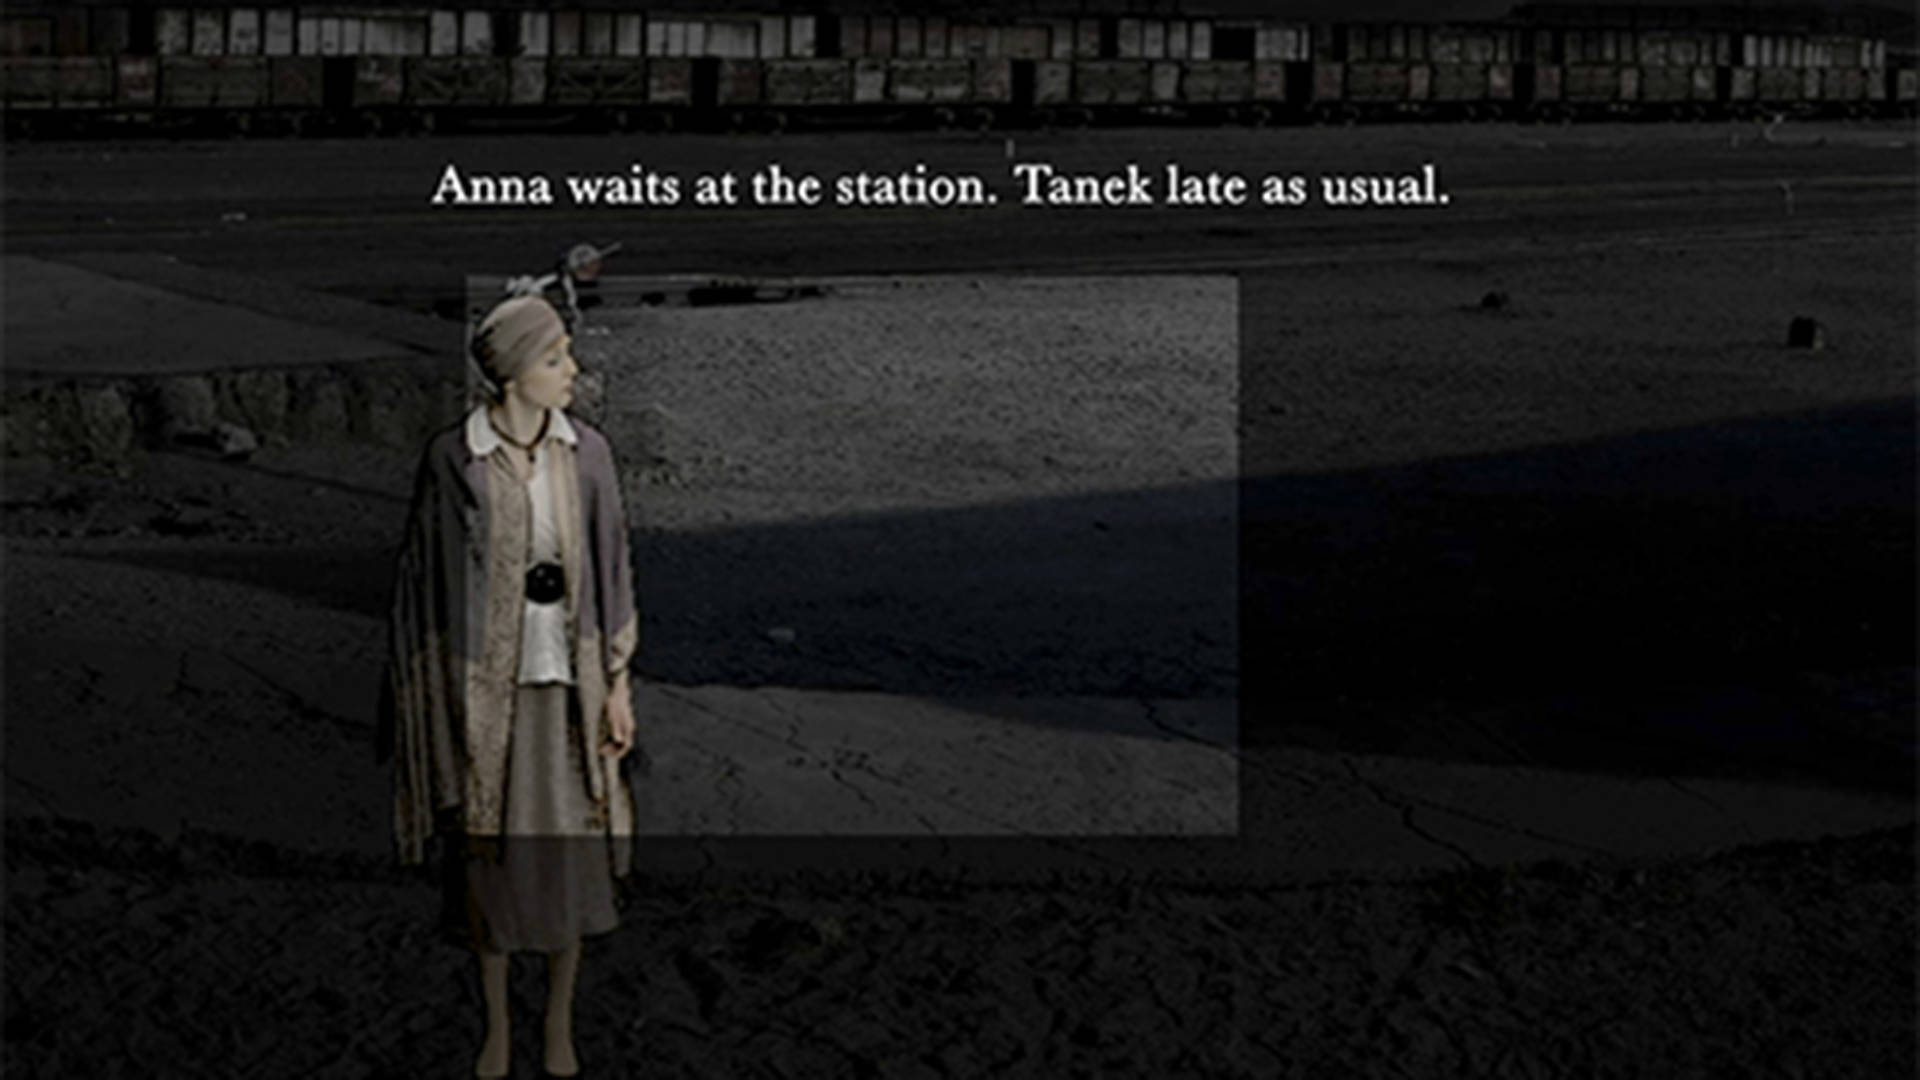 Anna Waits At The Station